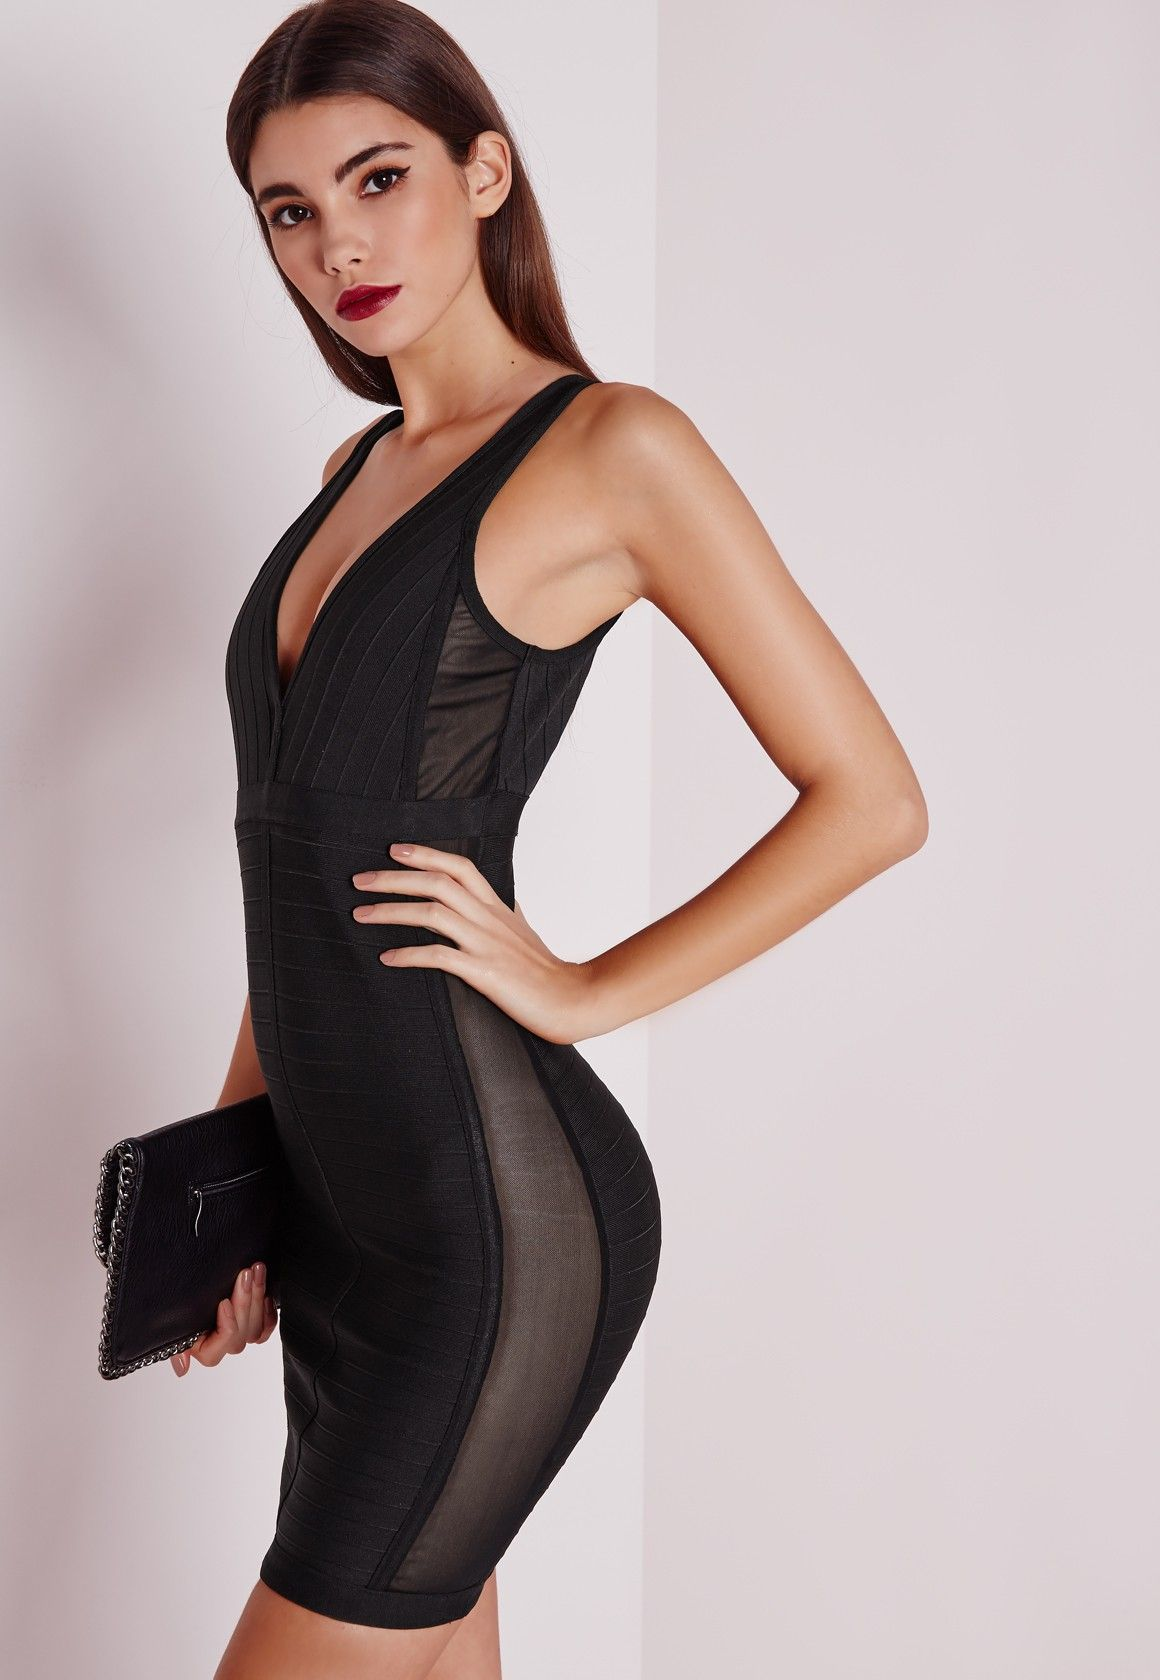 Black dress mini - Missguided Premium Mesh Side Panels Bandage Mini Dress Black